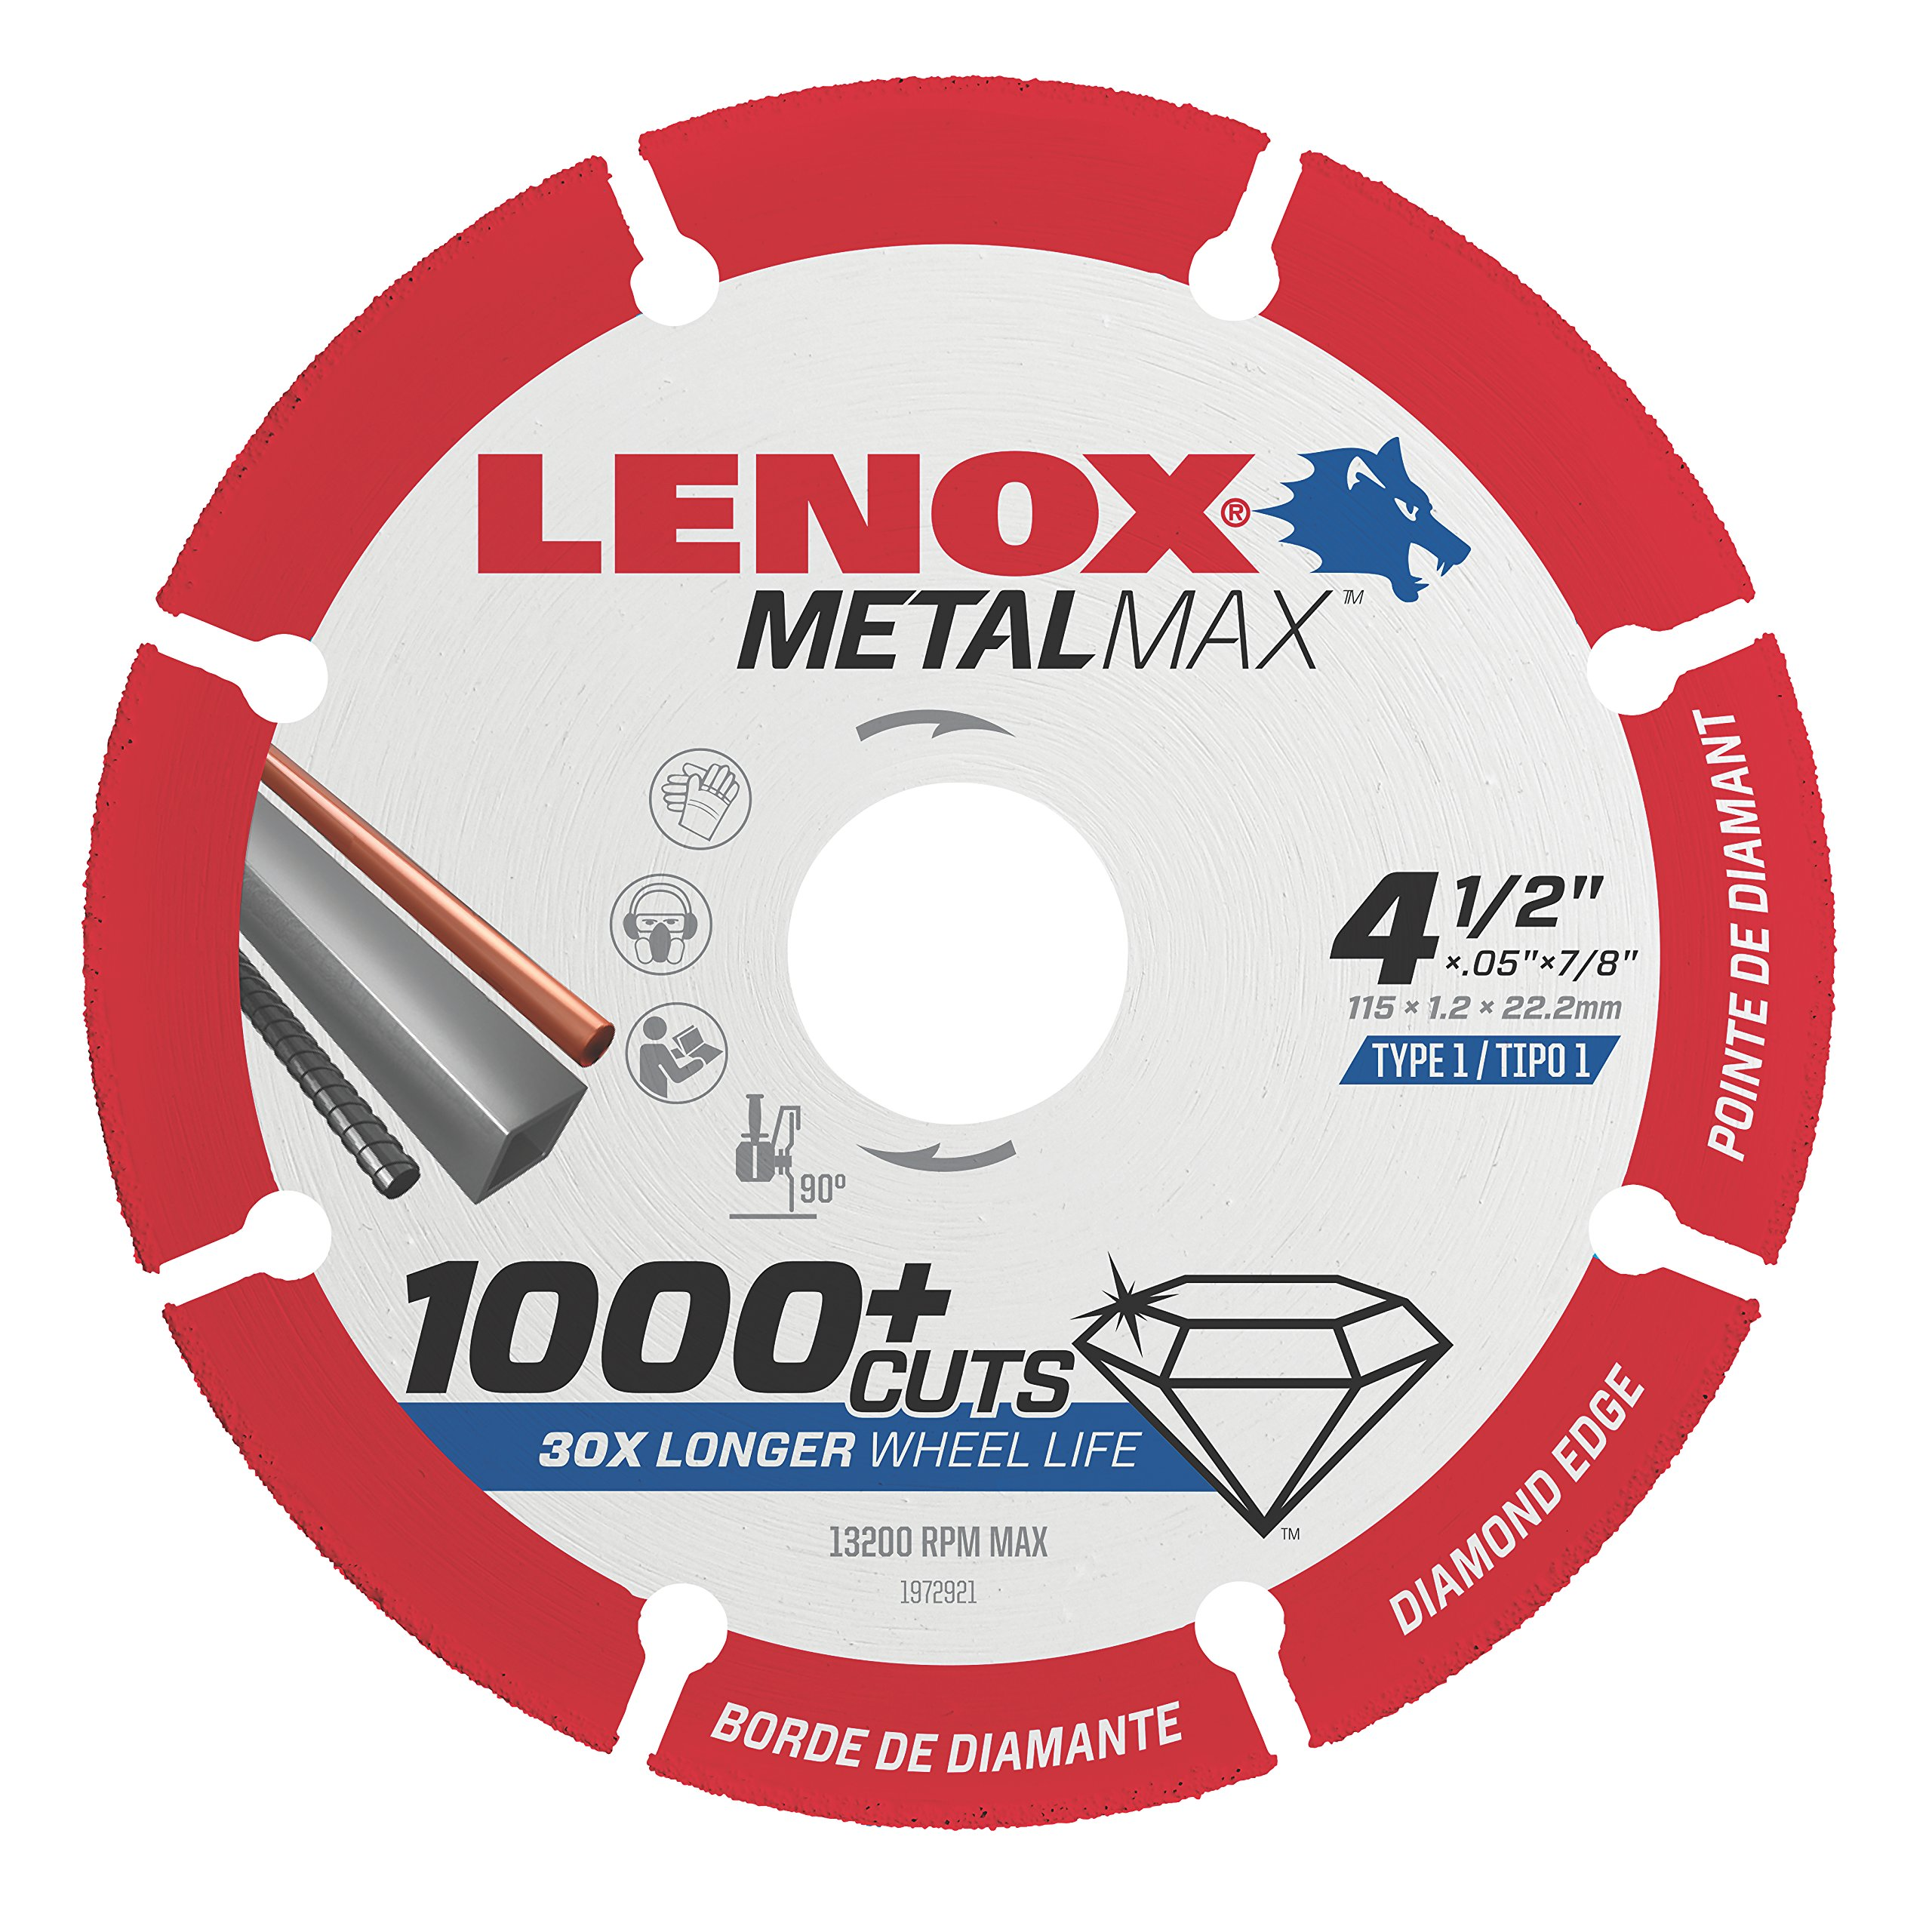 MK Diamond 152614 6-Inch Ogee Electroplated Profile Wheel